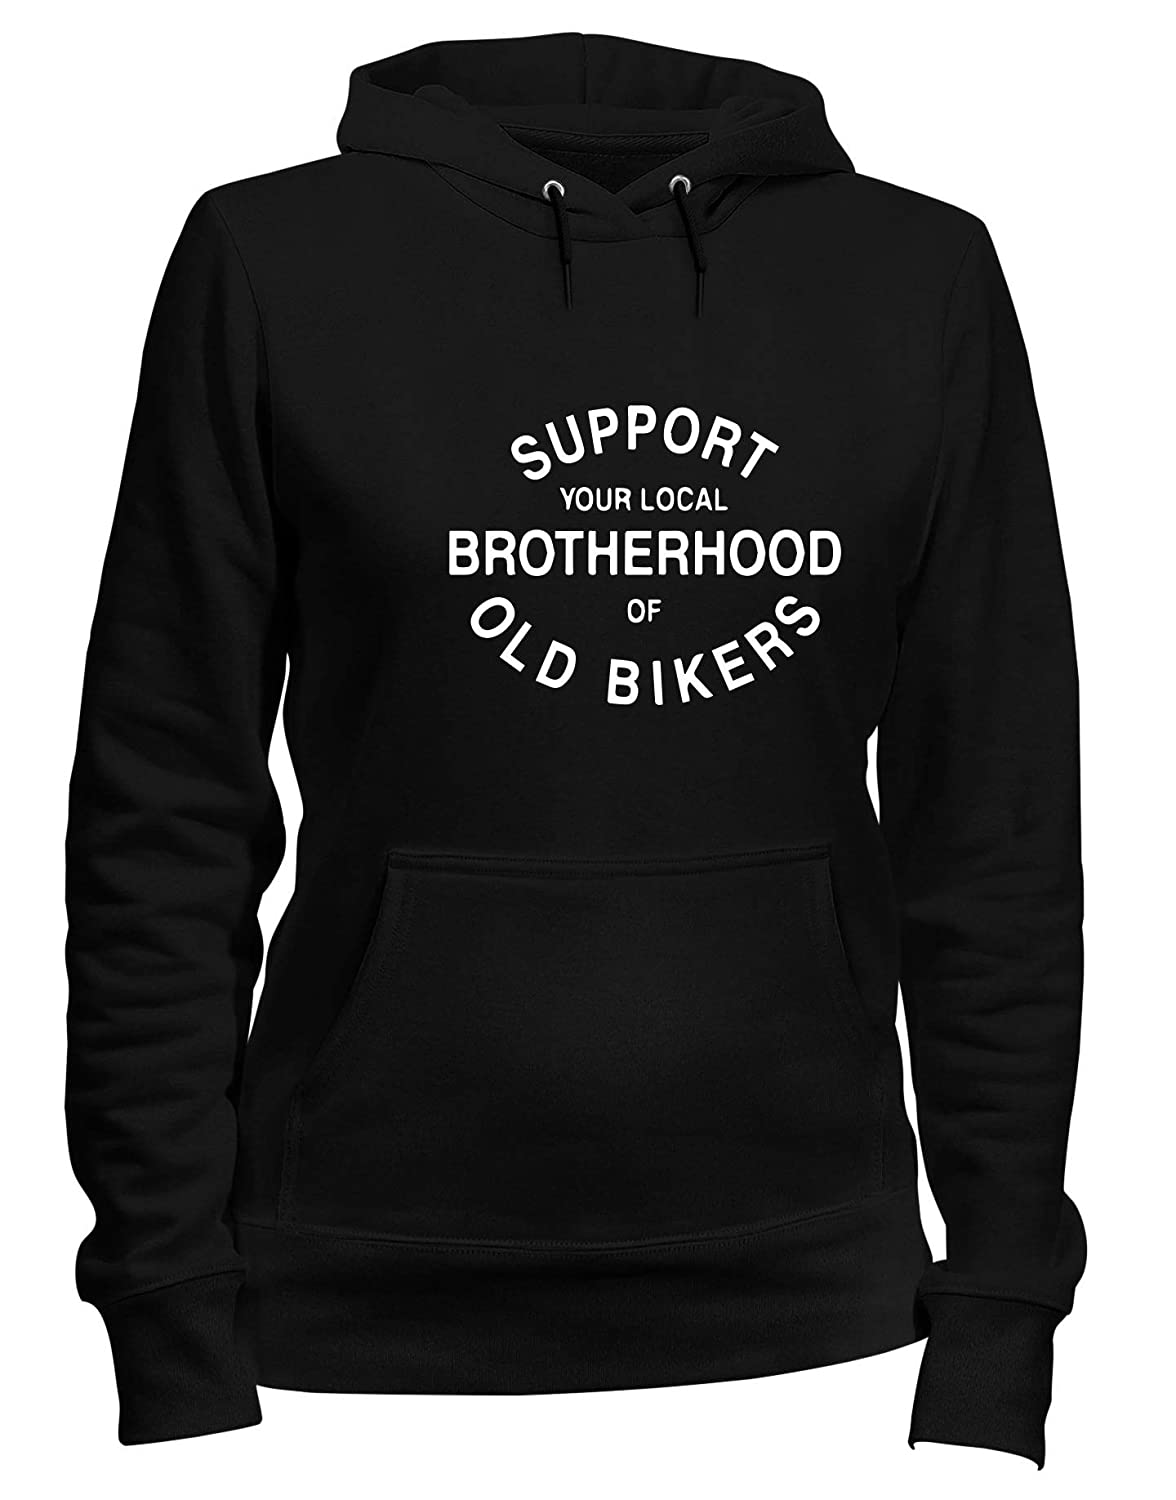 Speed Shirt Felpa Donna Cappuccio Nero TB0114 Support Your Local Brotherhood